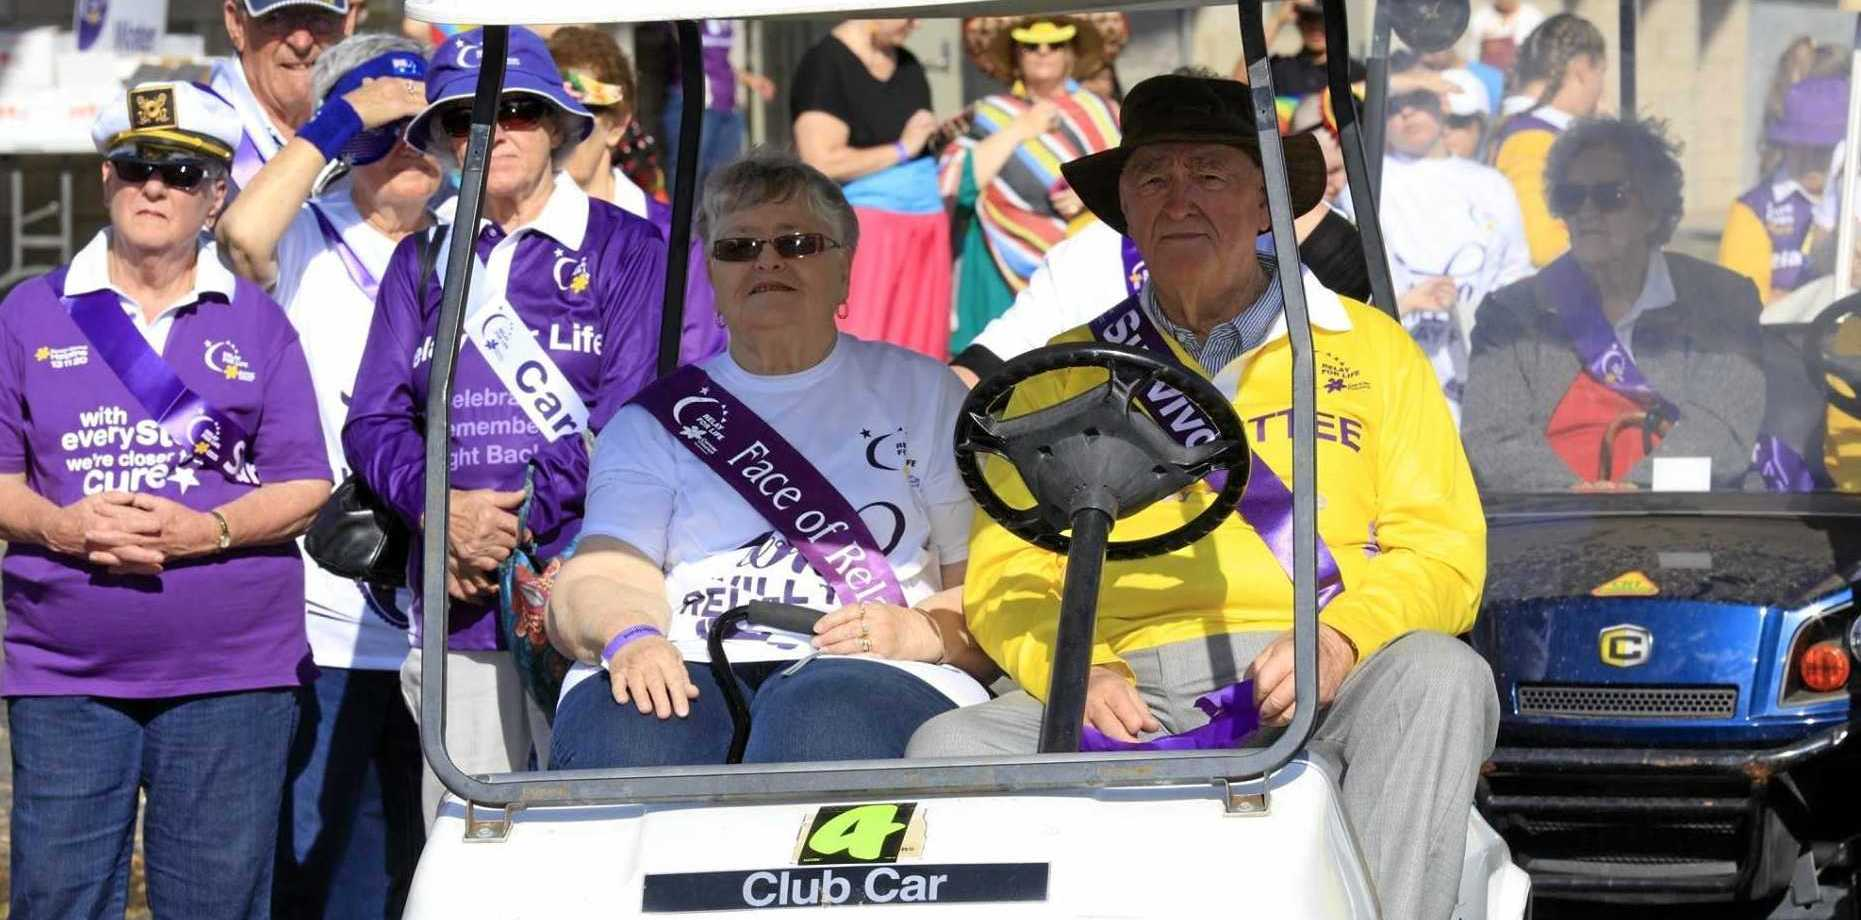 Survivors and carers lead the way at the Dalby Relay for Life last year.